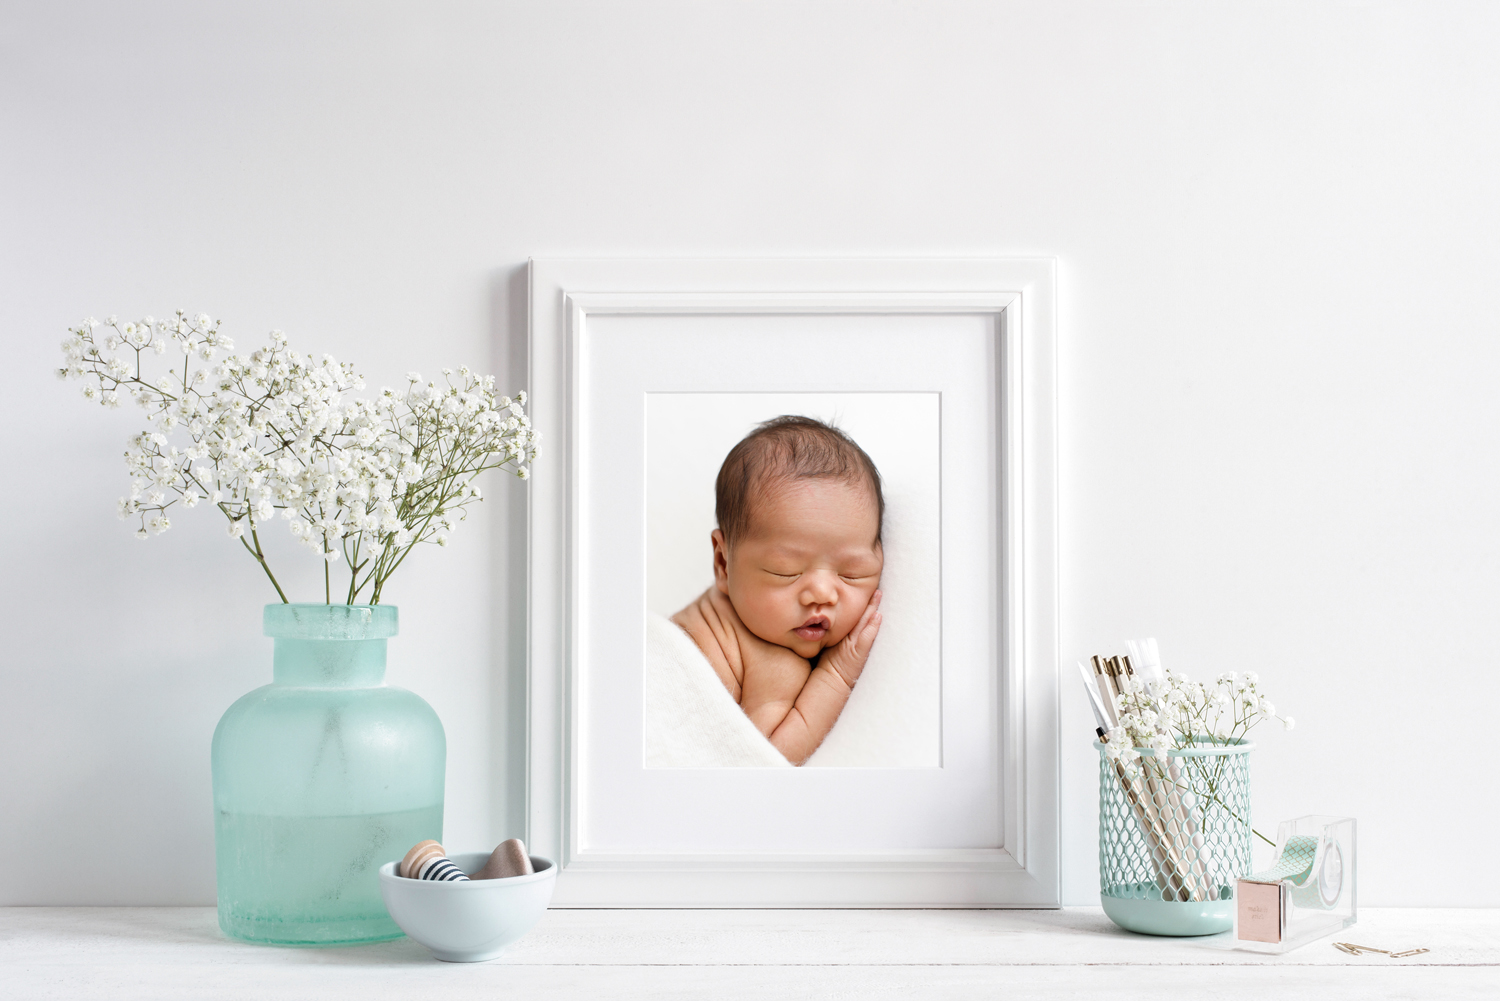 GIFT PRINTS - Professional, archival quality prints presented in a slip-in white mat board, ready to pop into your own frame or hand out as a gorgeous gift.Prints start from $85.